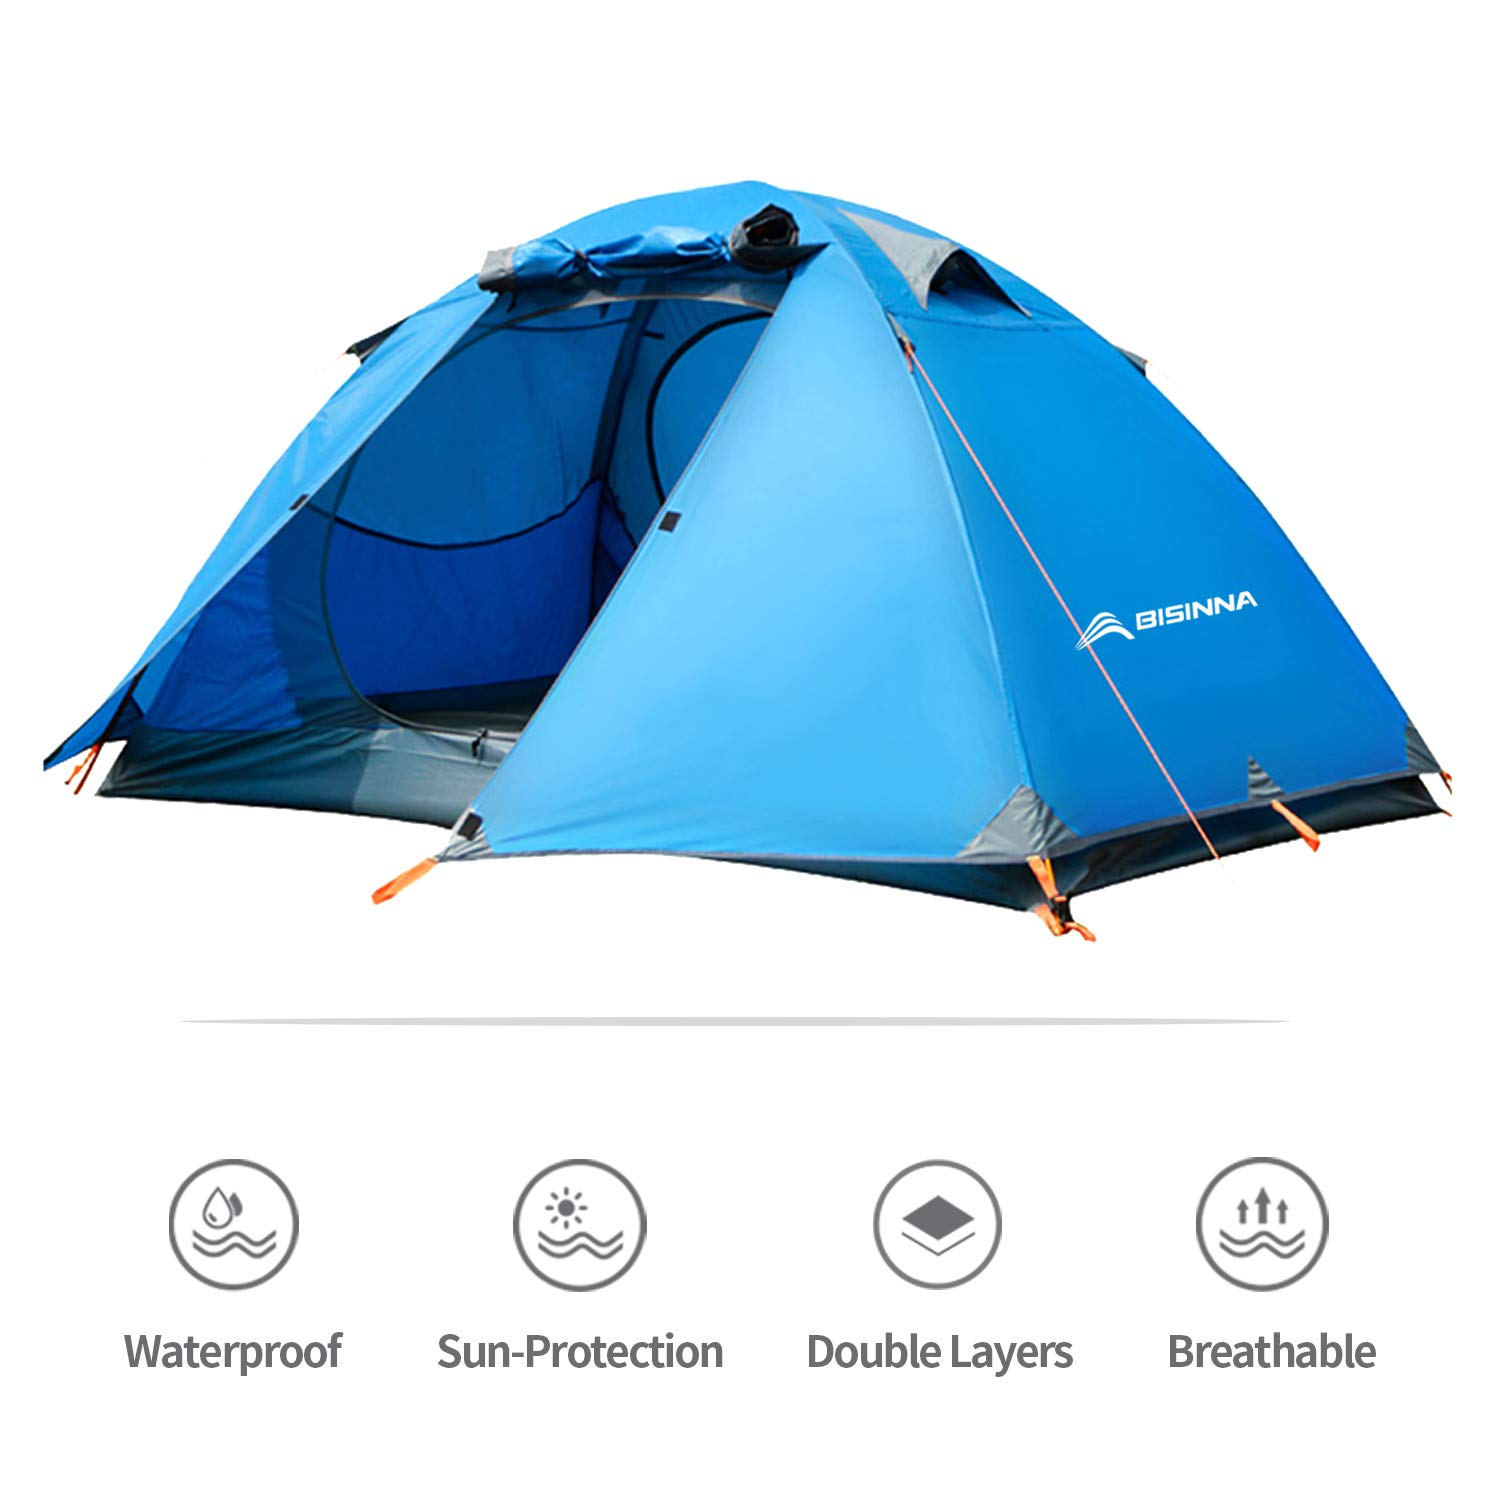 BISINNA 2 Person Camping Tent Ourdoor Lightweight Waterproof Easy Setup Two Doors 3 Season Double Layer Instant Backbacking Tent for Camping Backpacking Hiking Travelling Hunting with Carry Bag